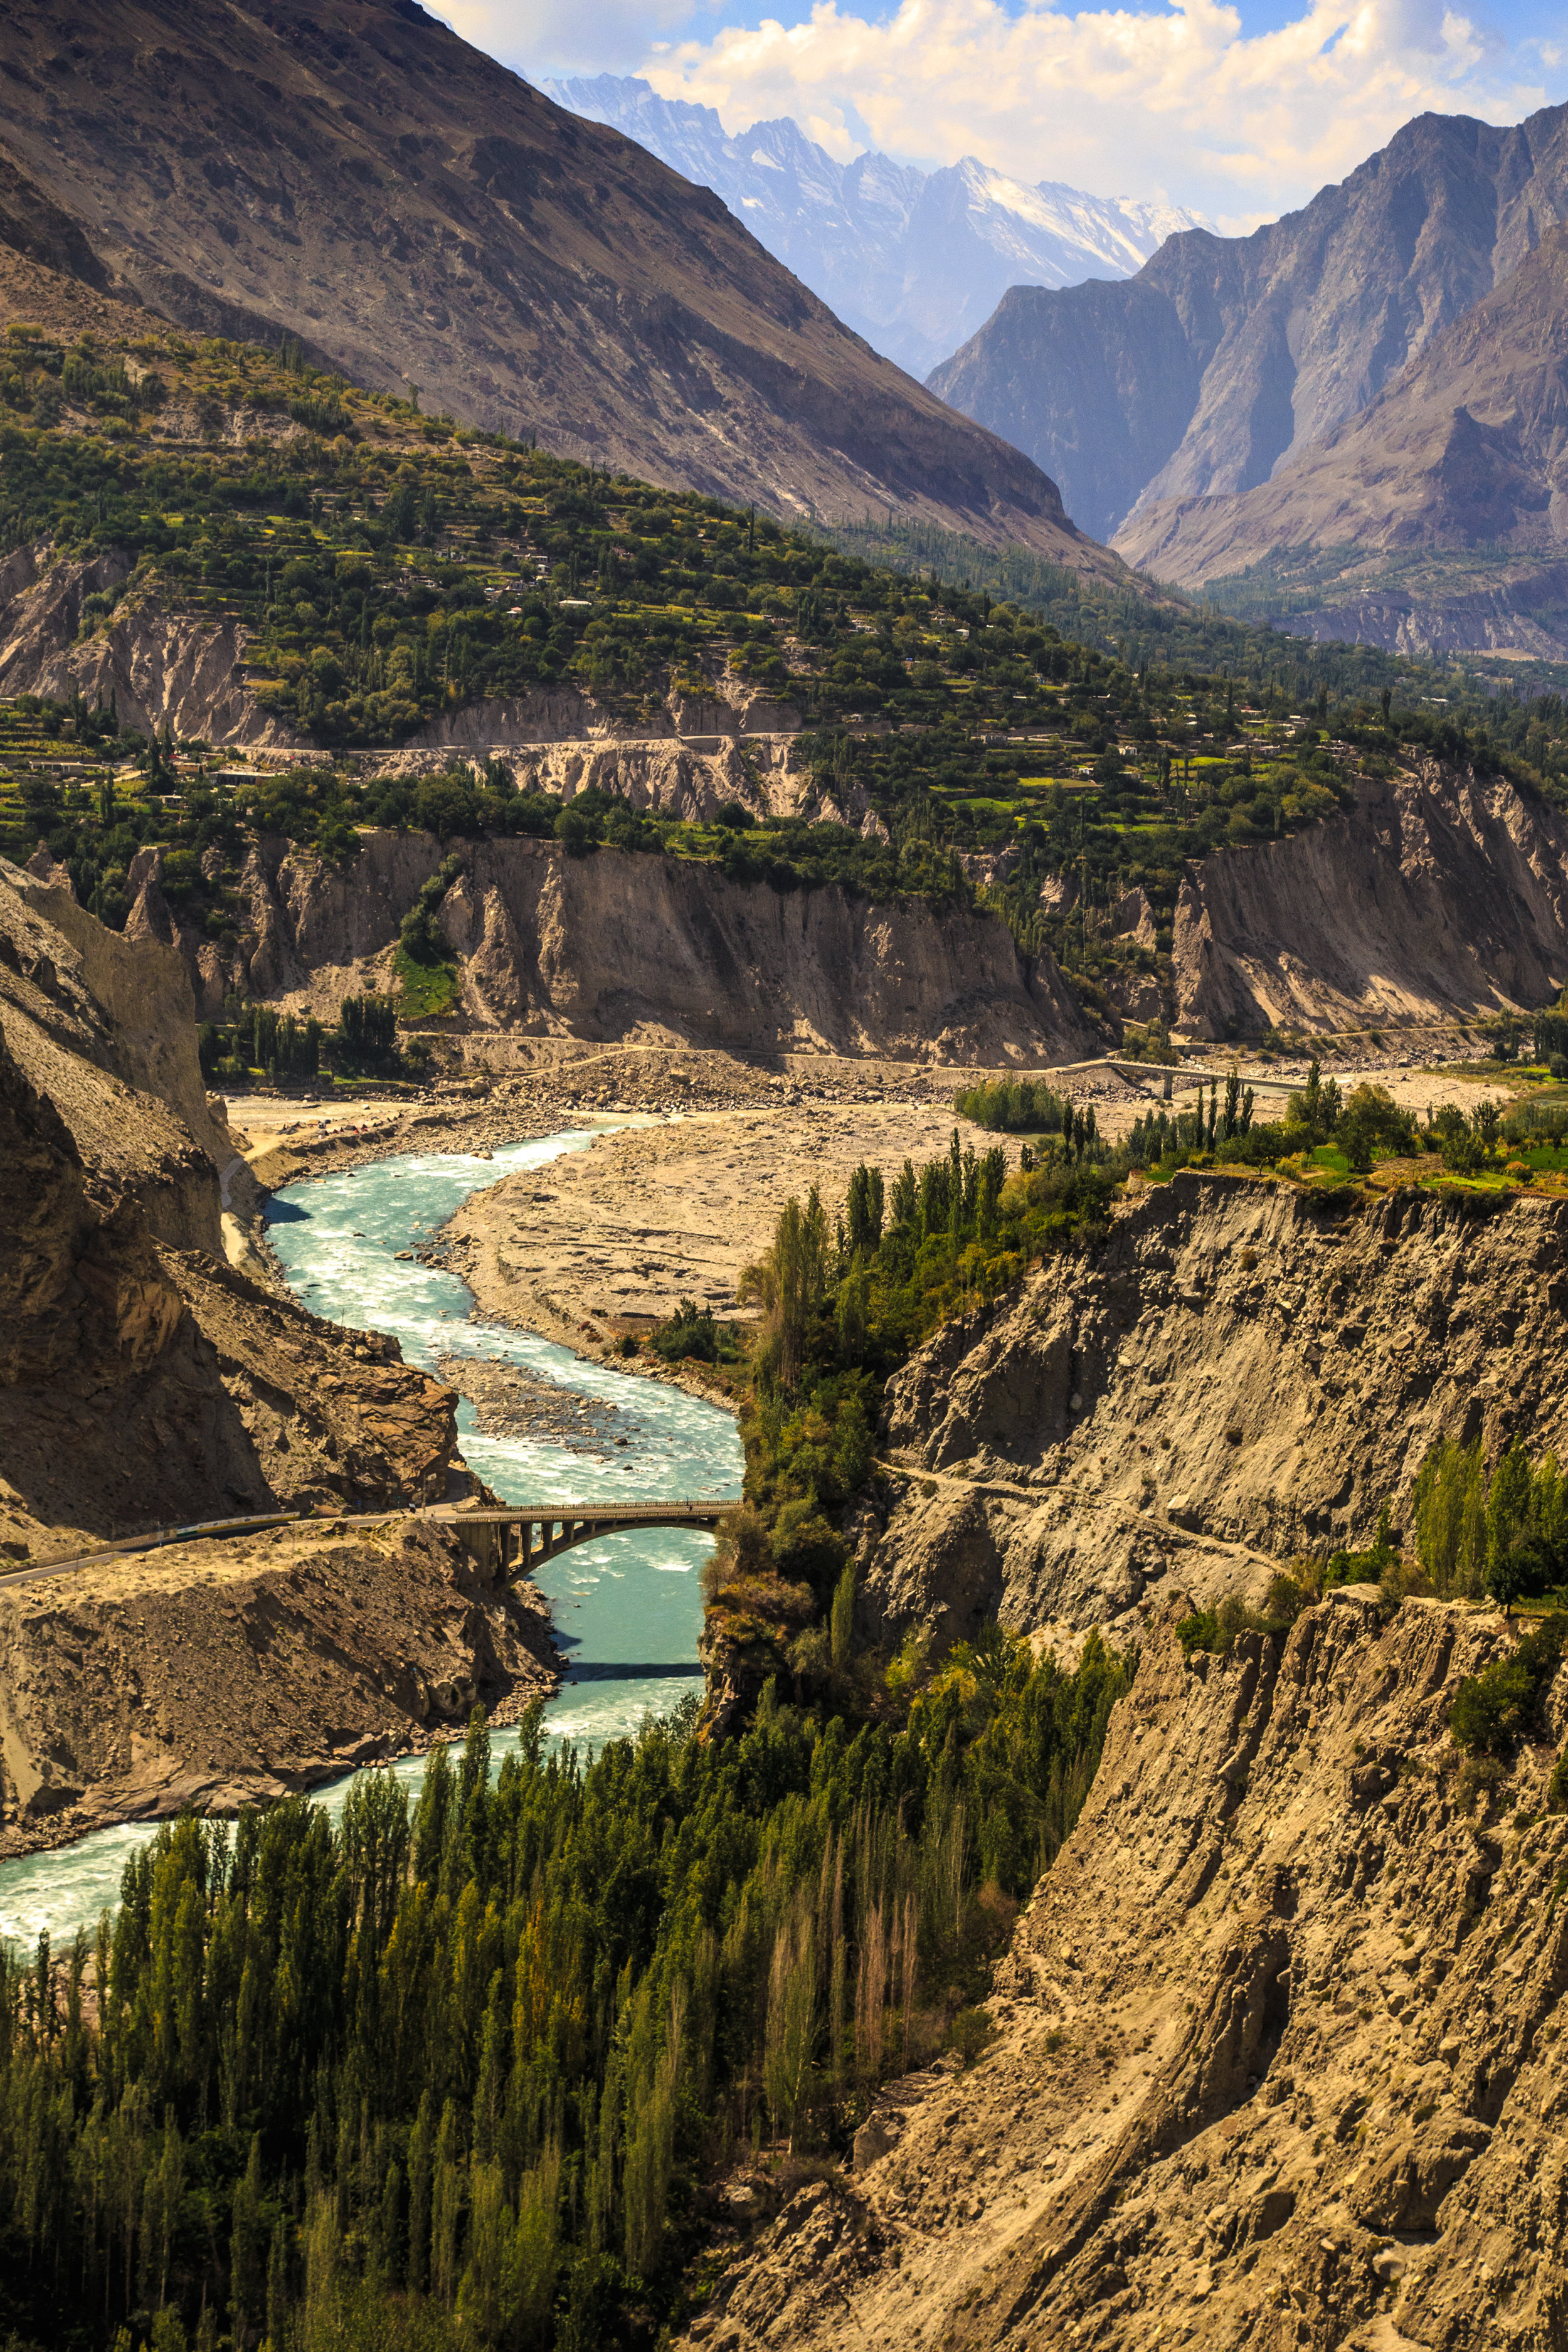 A view of the Hunza River from Baltit Fort